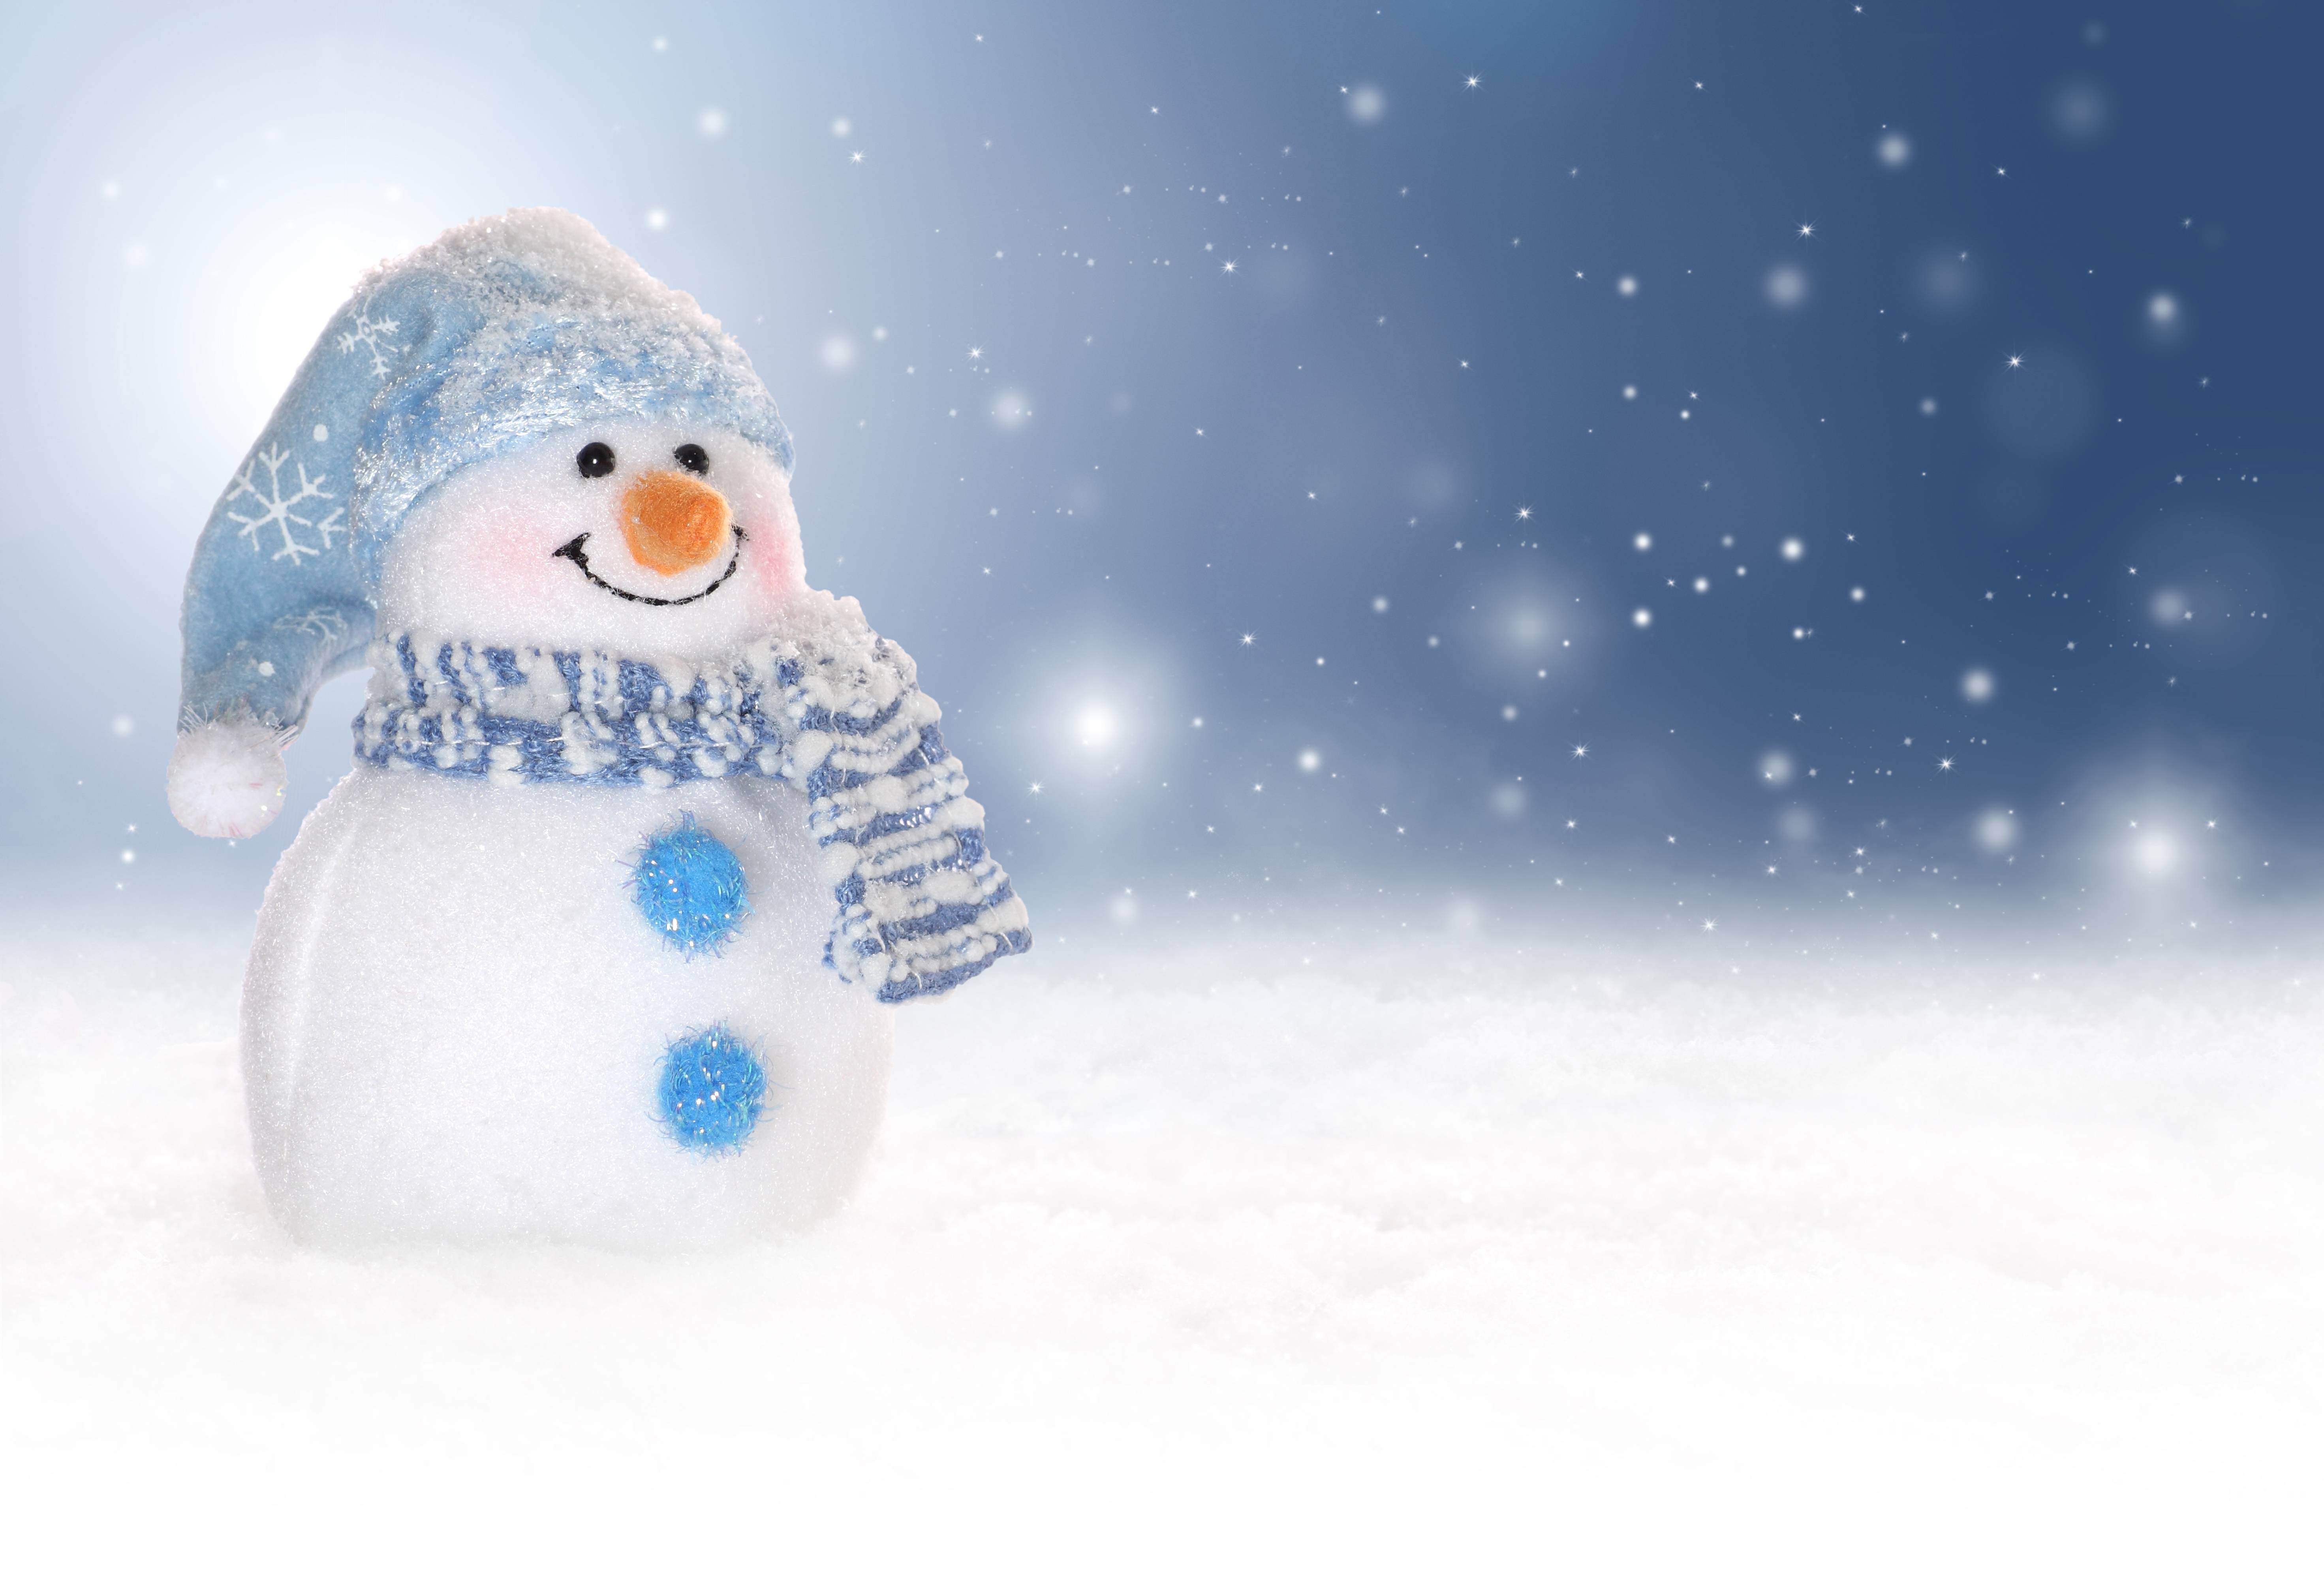 Winter Backgrounds for Desktop 5885x3995